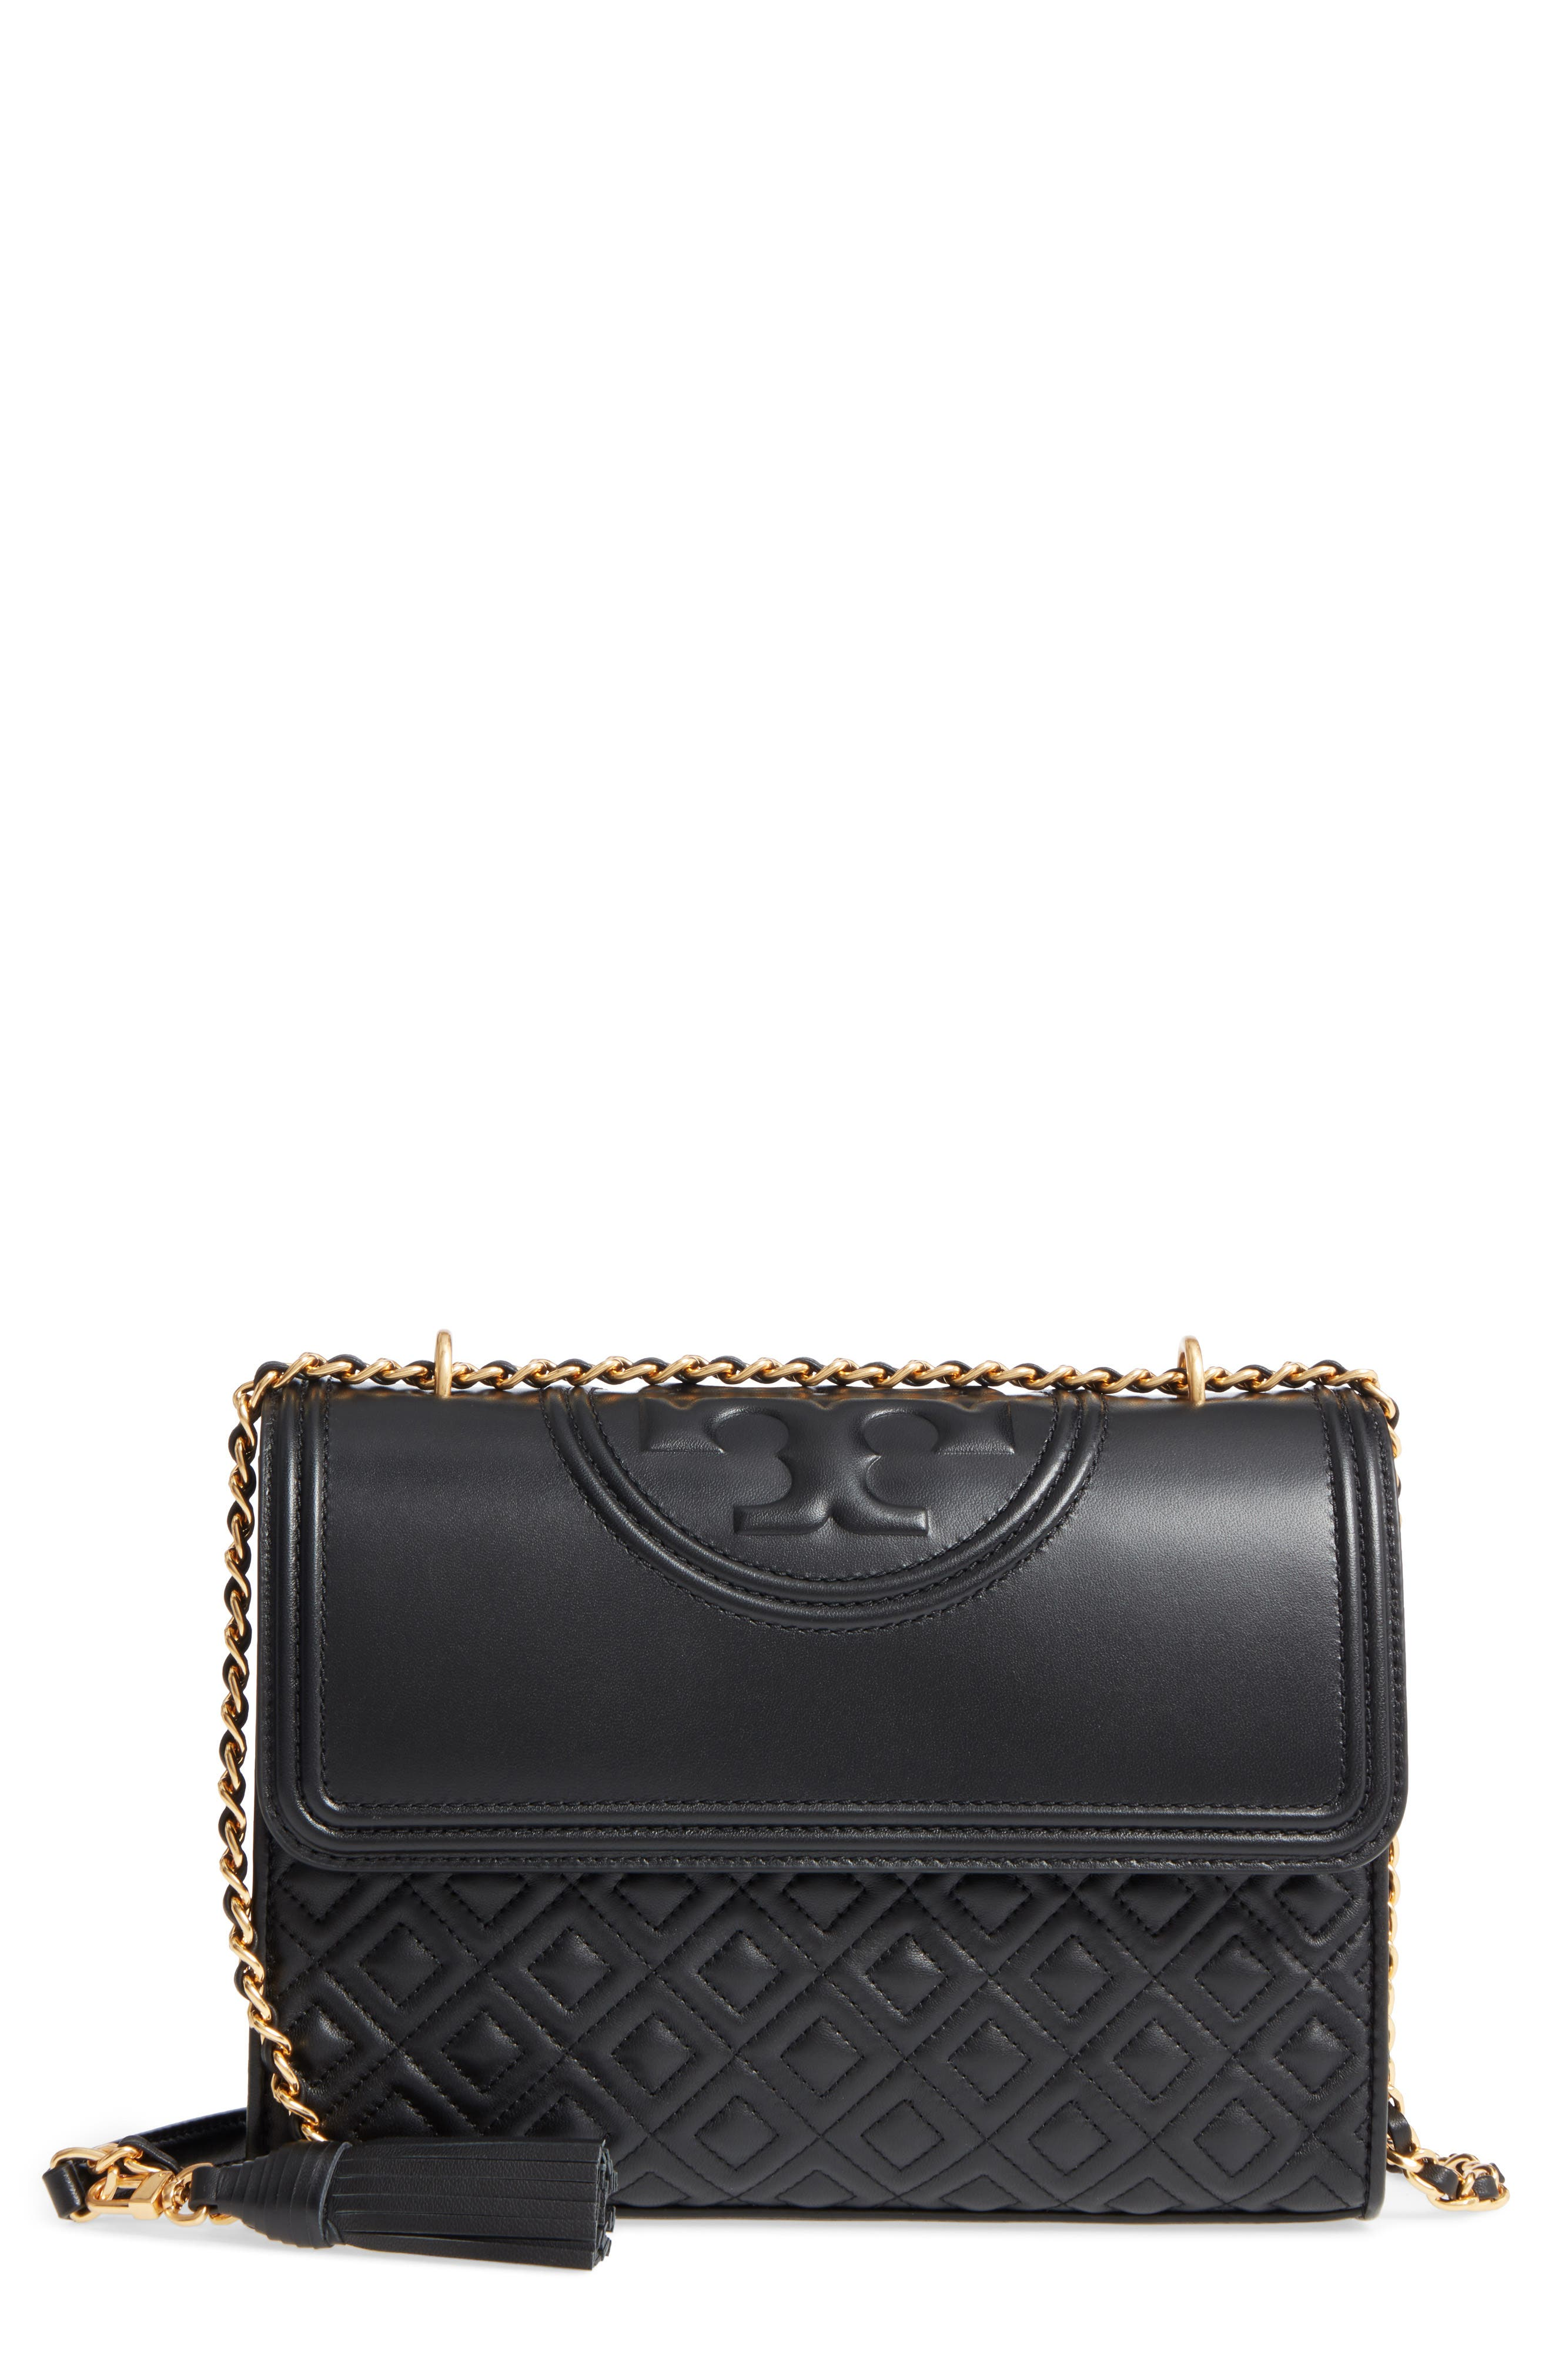 Main Image - Tory Burch Fleming Quilted Lambskin Leather Convertible Shoulder Bag